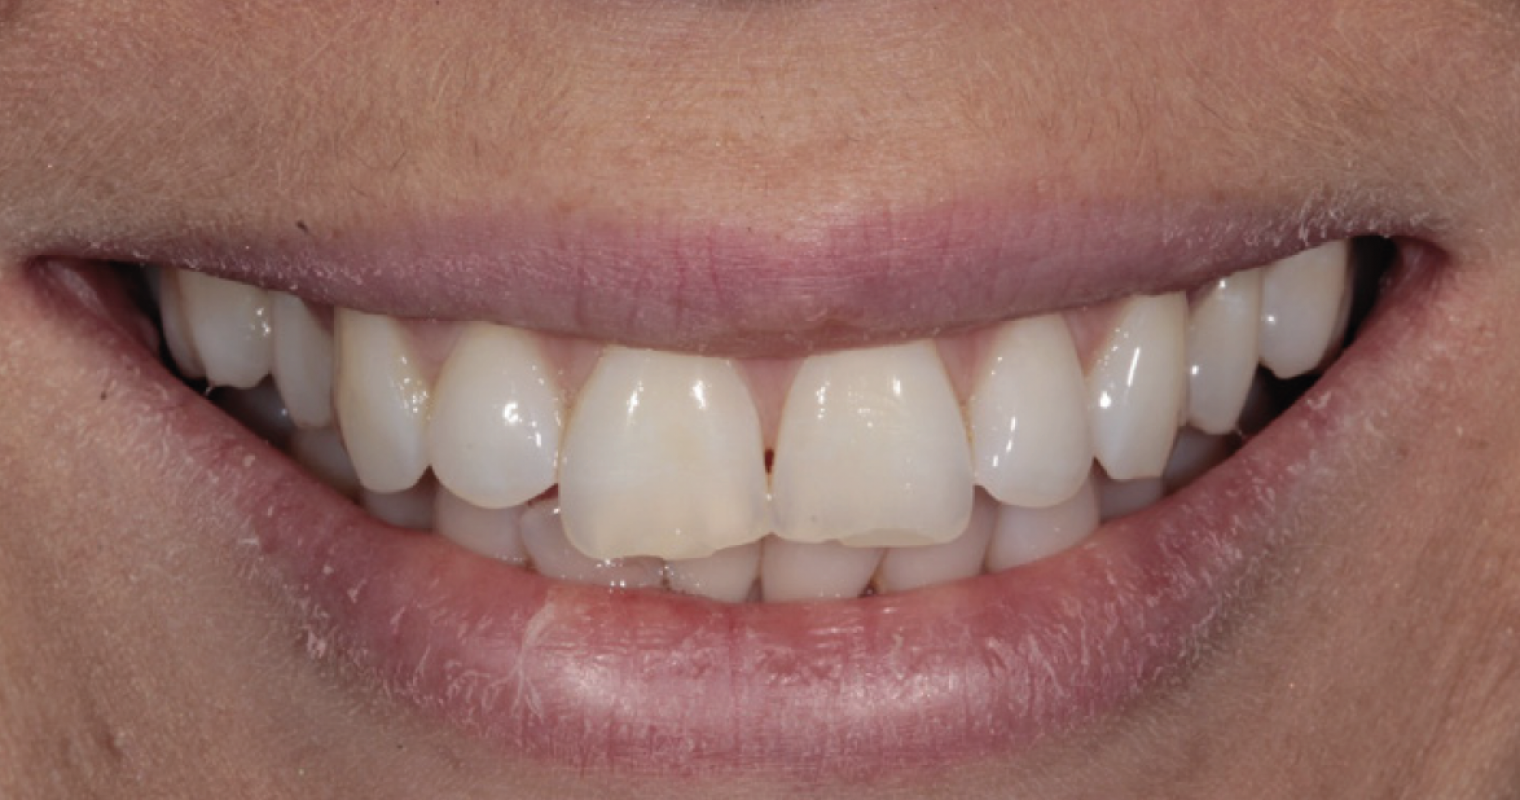 Tif Qureshi - Ortho restorative - case 1.1